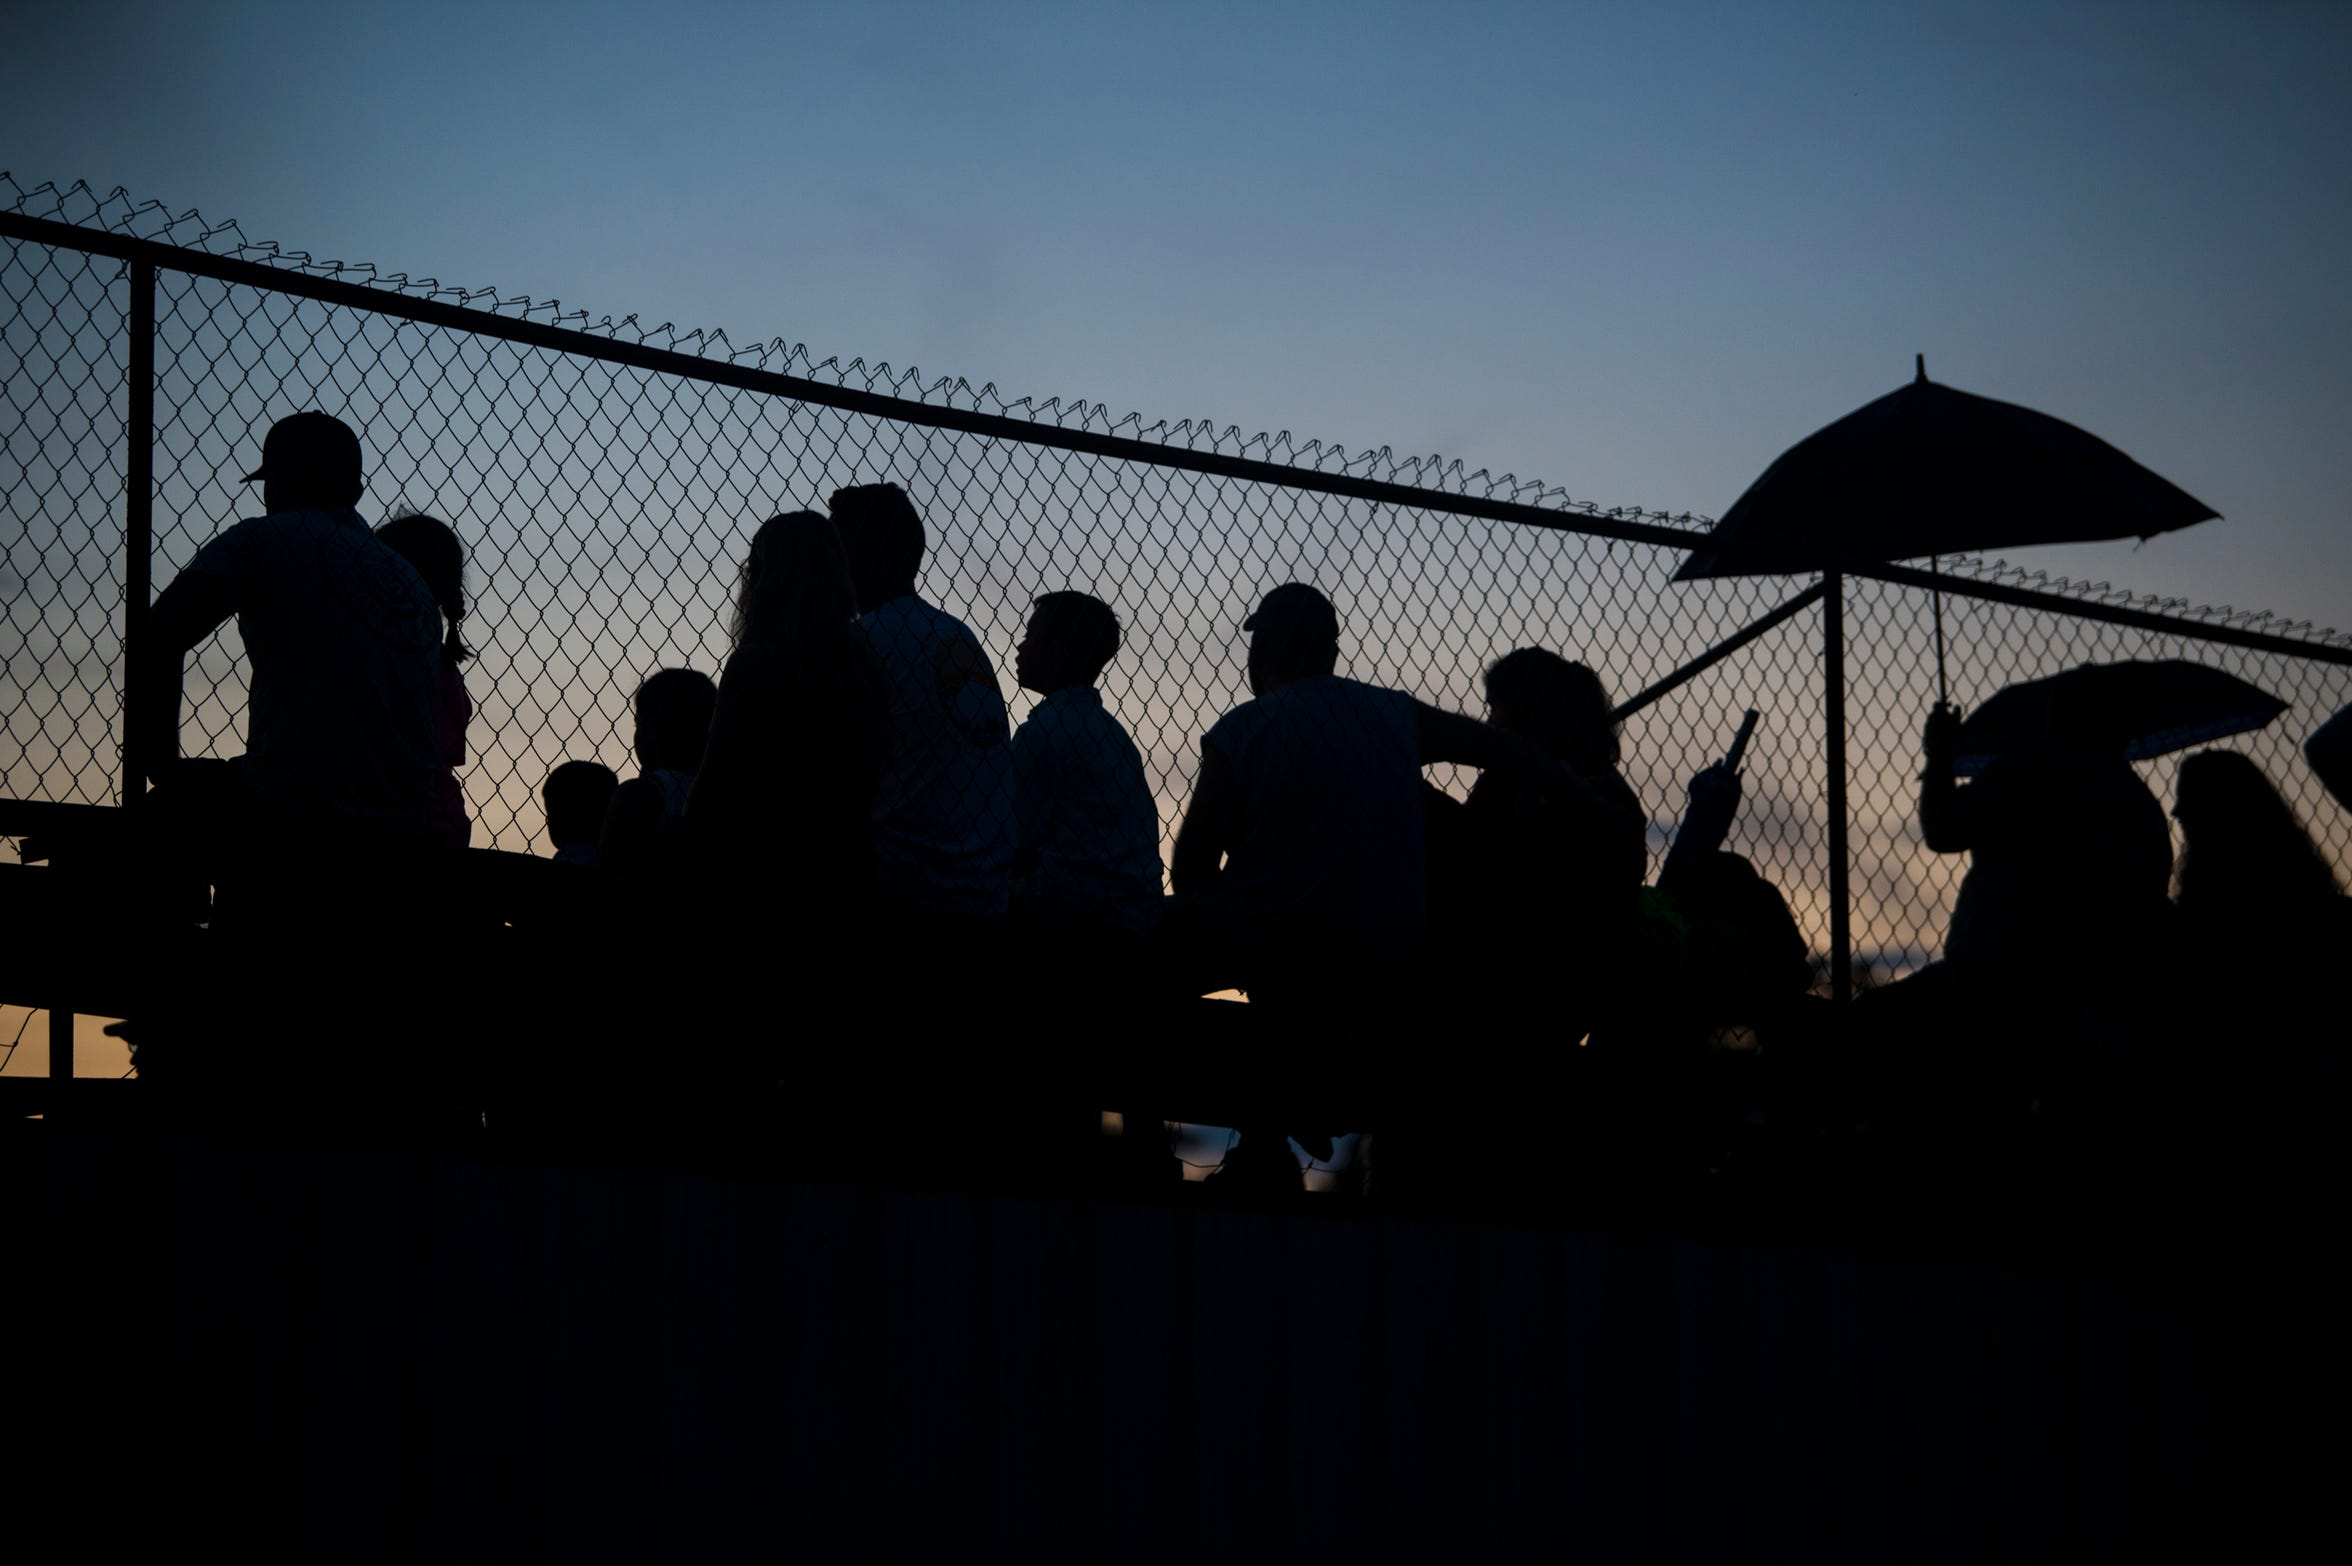 Race fans watch from the bleachers at Flomaton Speedway in Flomaton, Ala., on Saturday, Aug. 24, 2019.